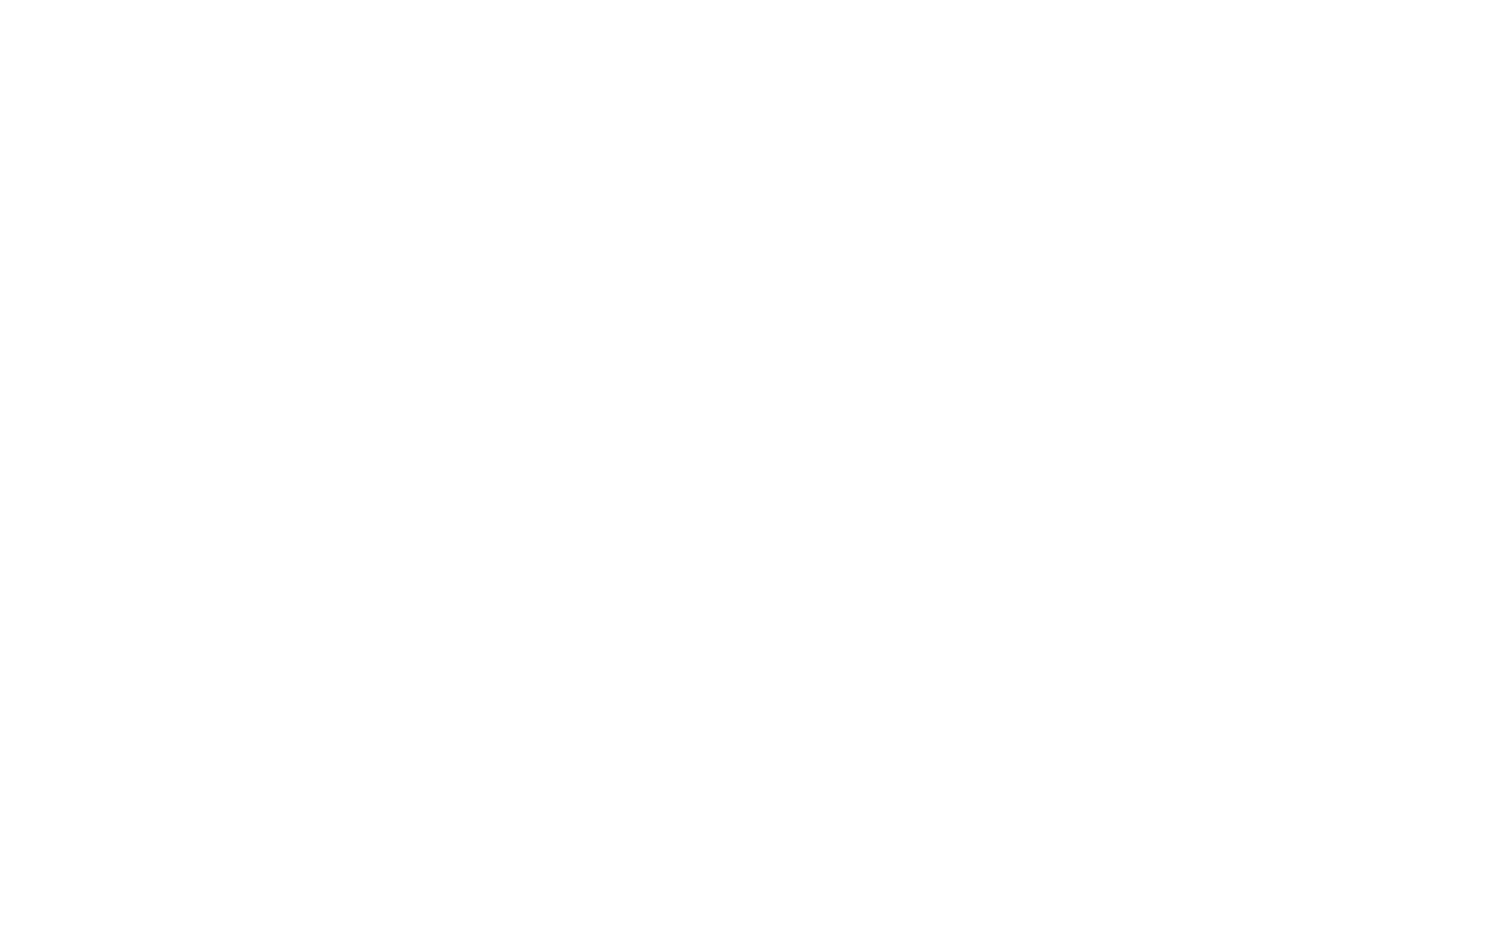 Renew Communities